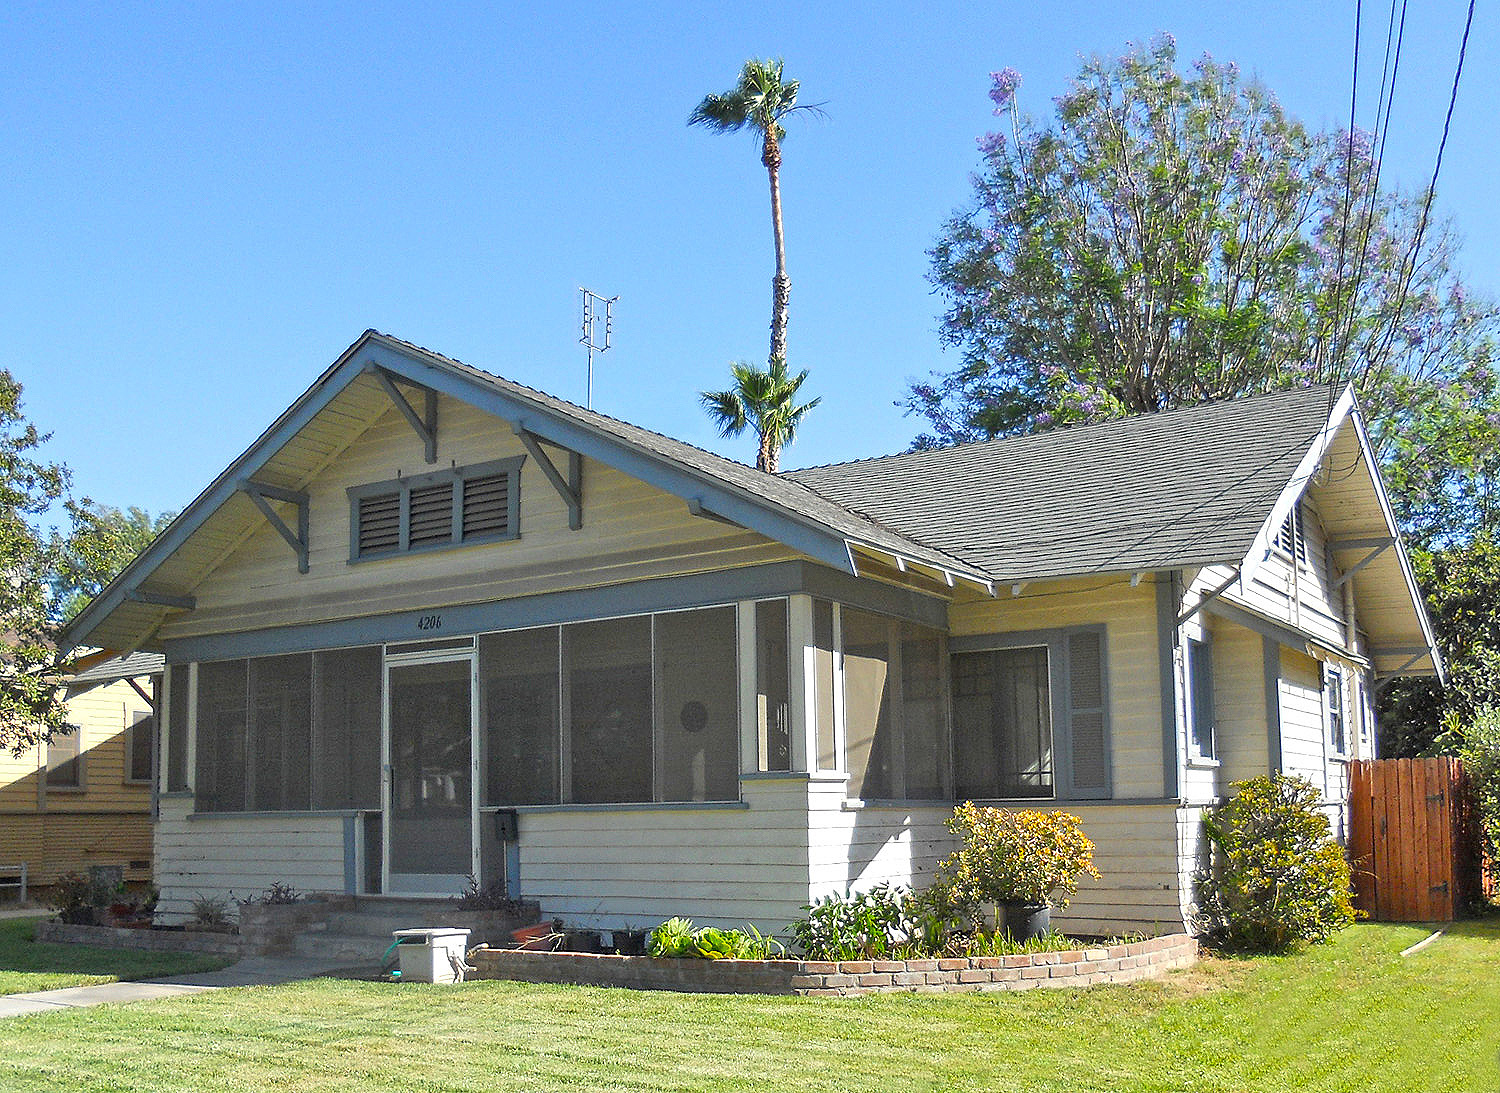 """4206 Homewood Ct, Riverside CA 92506 listed by """"The Sister Team"""""""